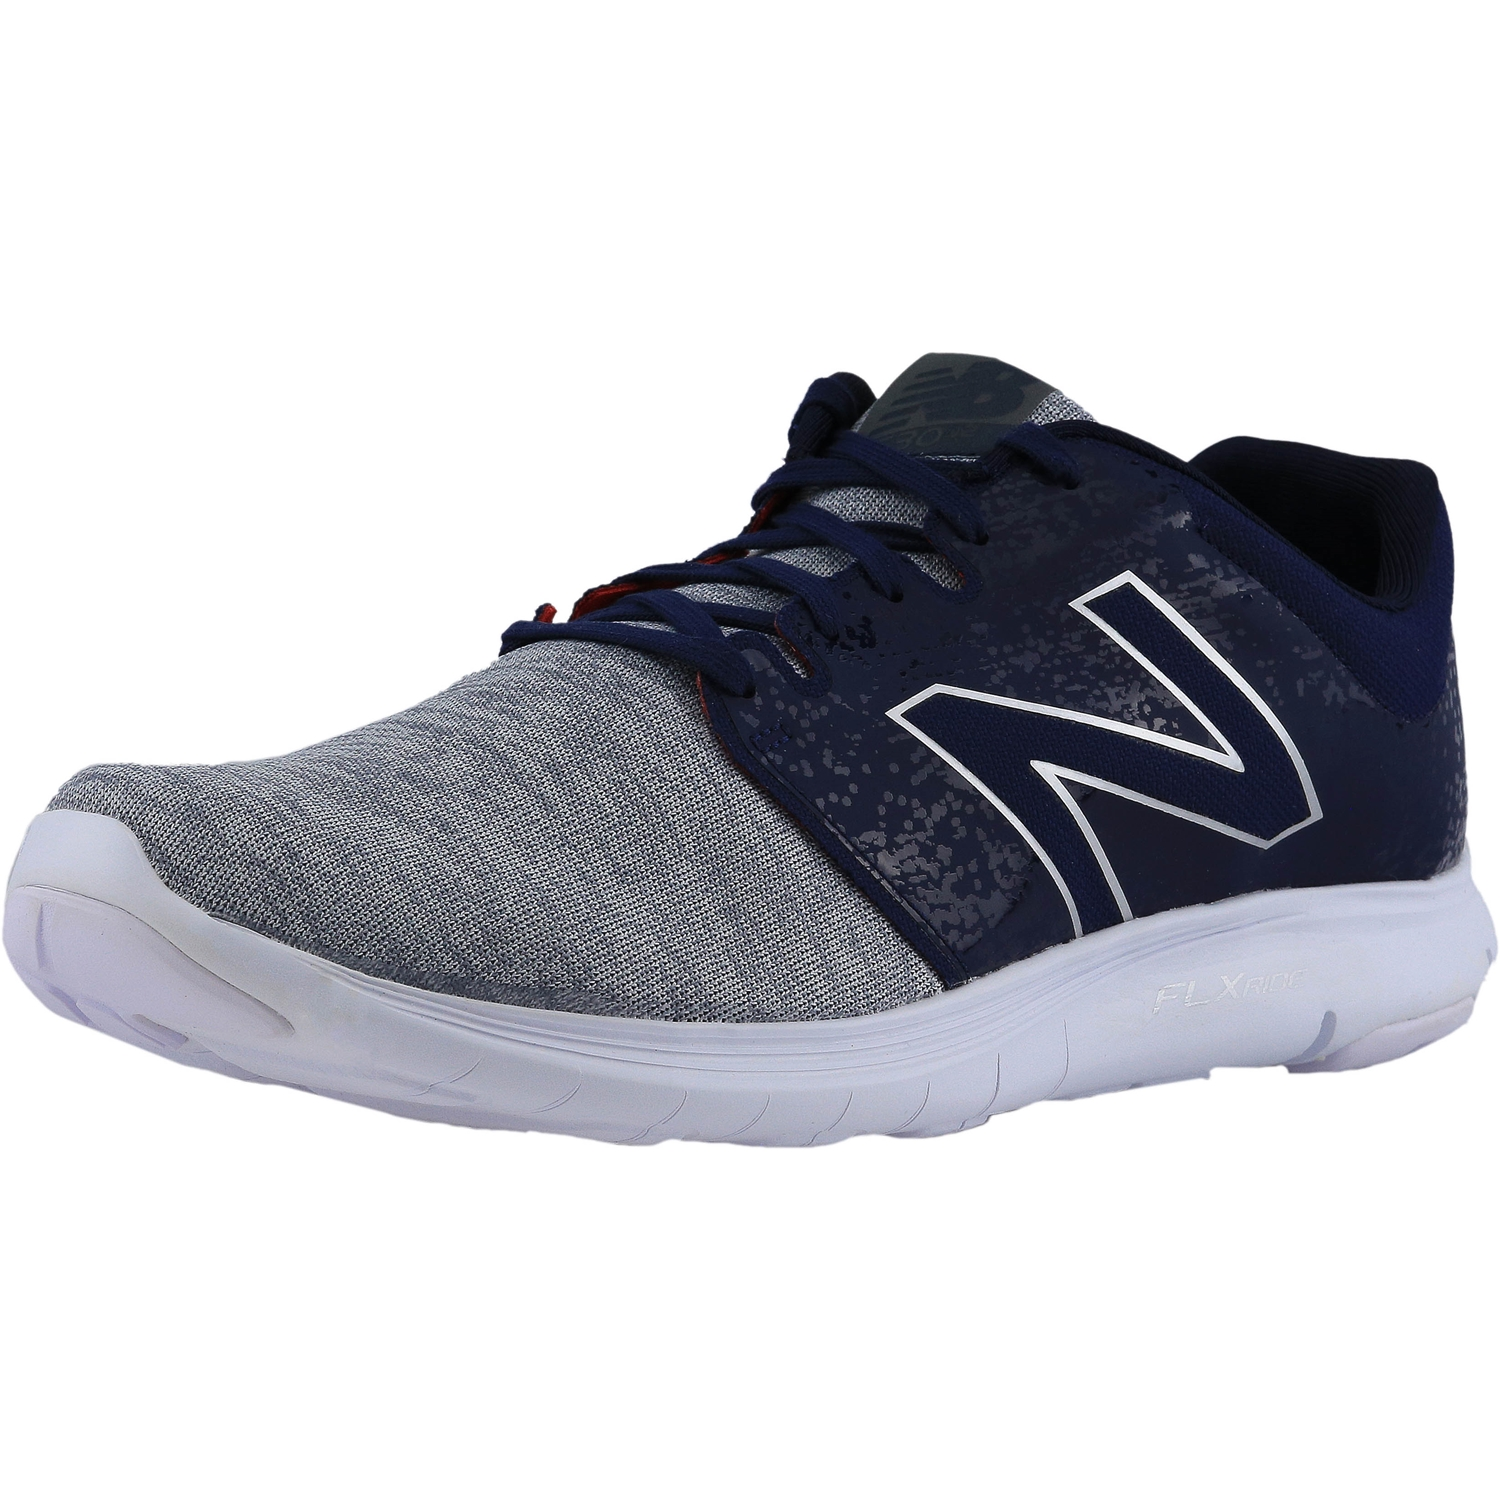 New Balance Men's M530 Rn2 Ankle-High Fabric Running Shoe - 11M